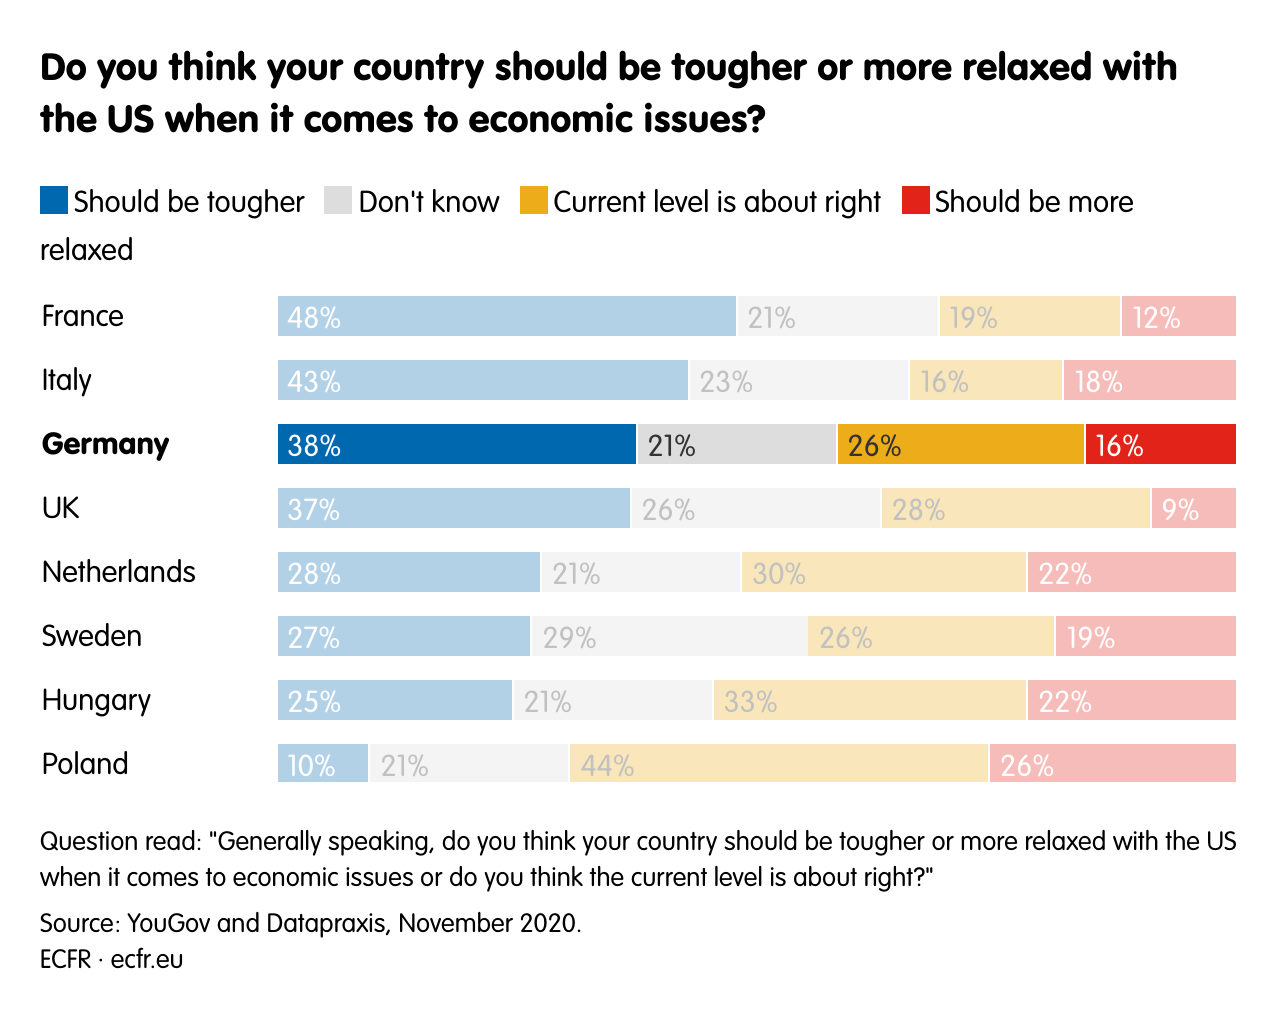 Do you think your country should be tougher or more relaxed with the US when it comes to economic issues?